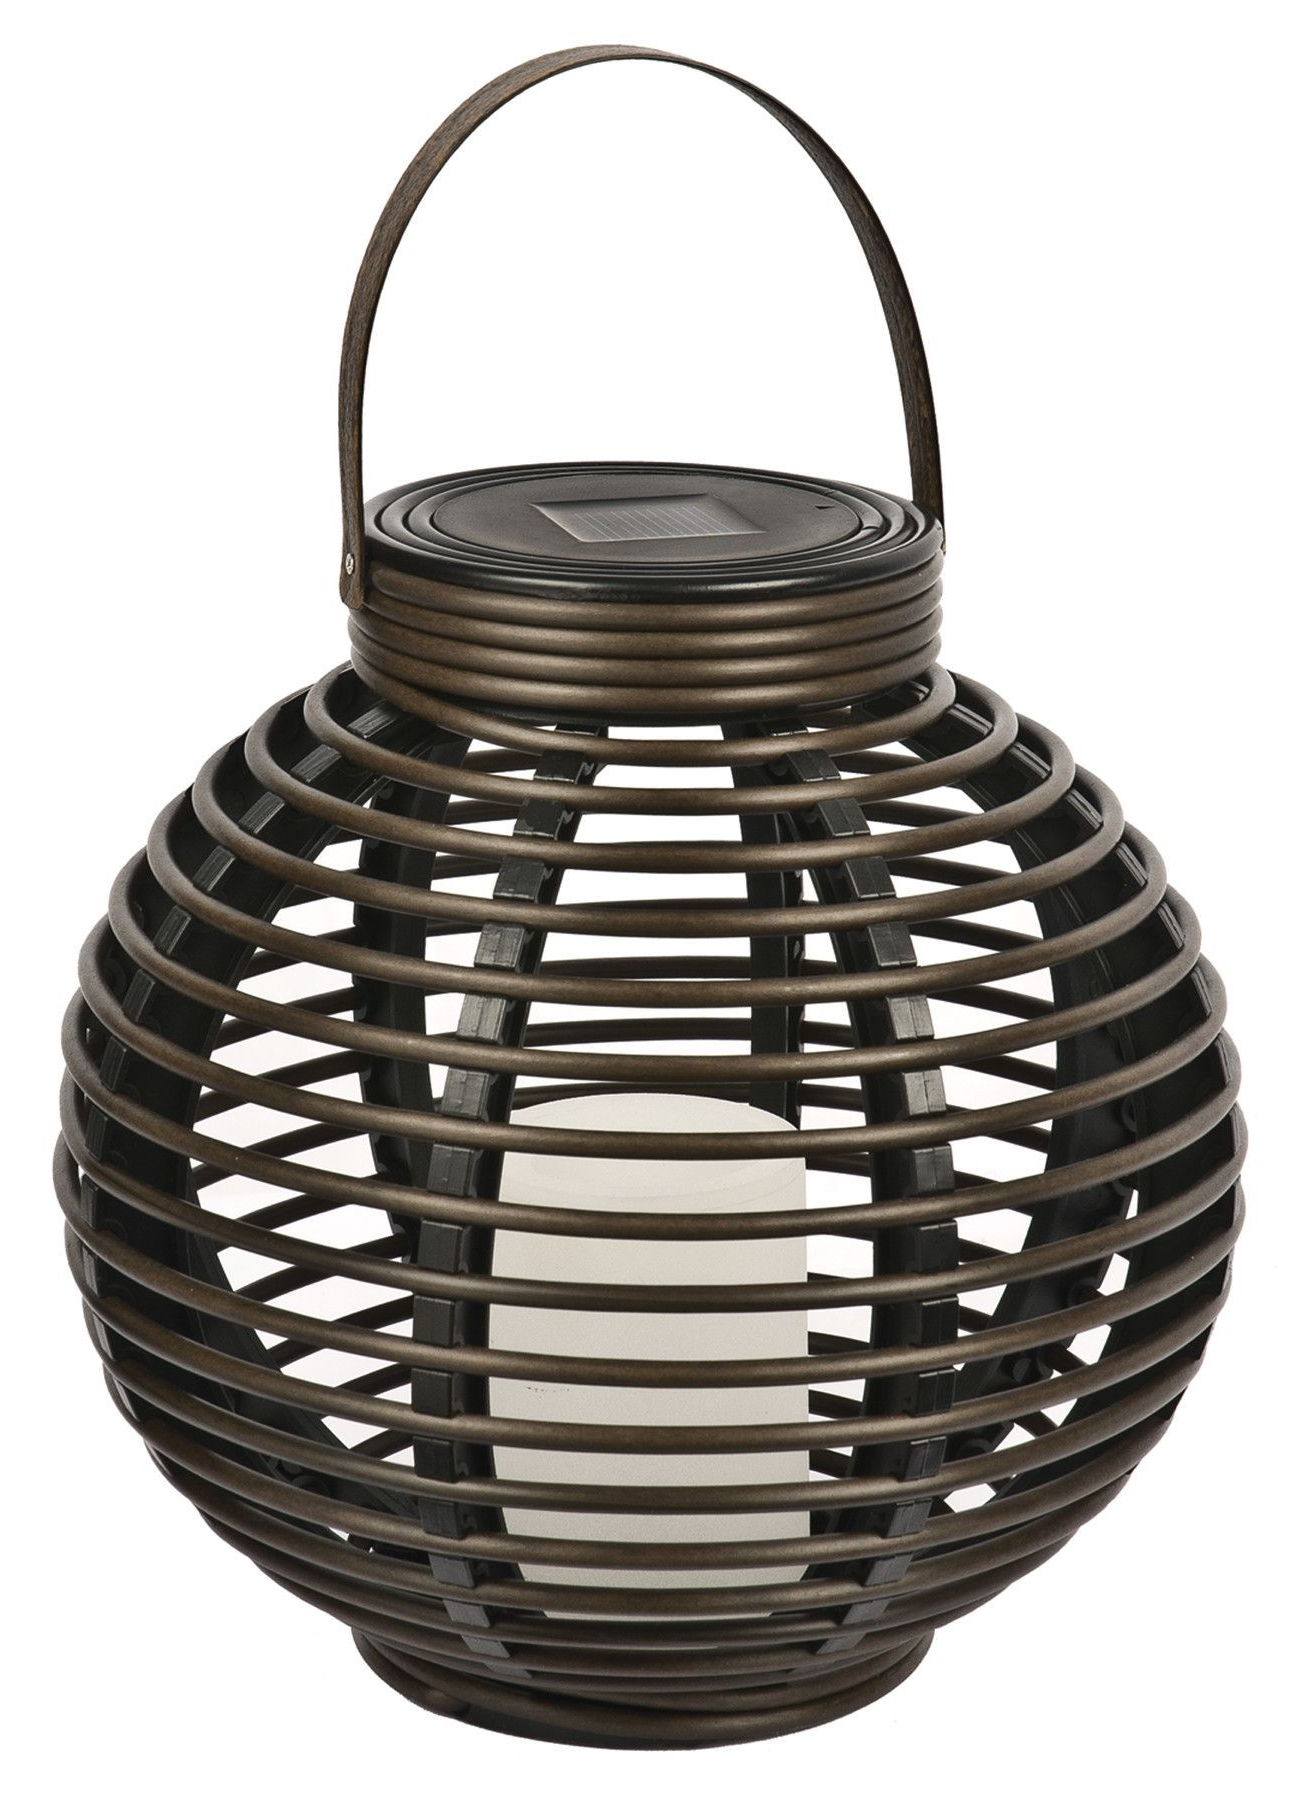 Solar Flickering Basket Hanging Plastic Lantern Rattan And Intended For Current Outdoor Rattan Lanterns (View 2 of 20)